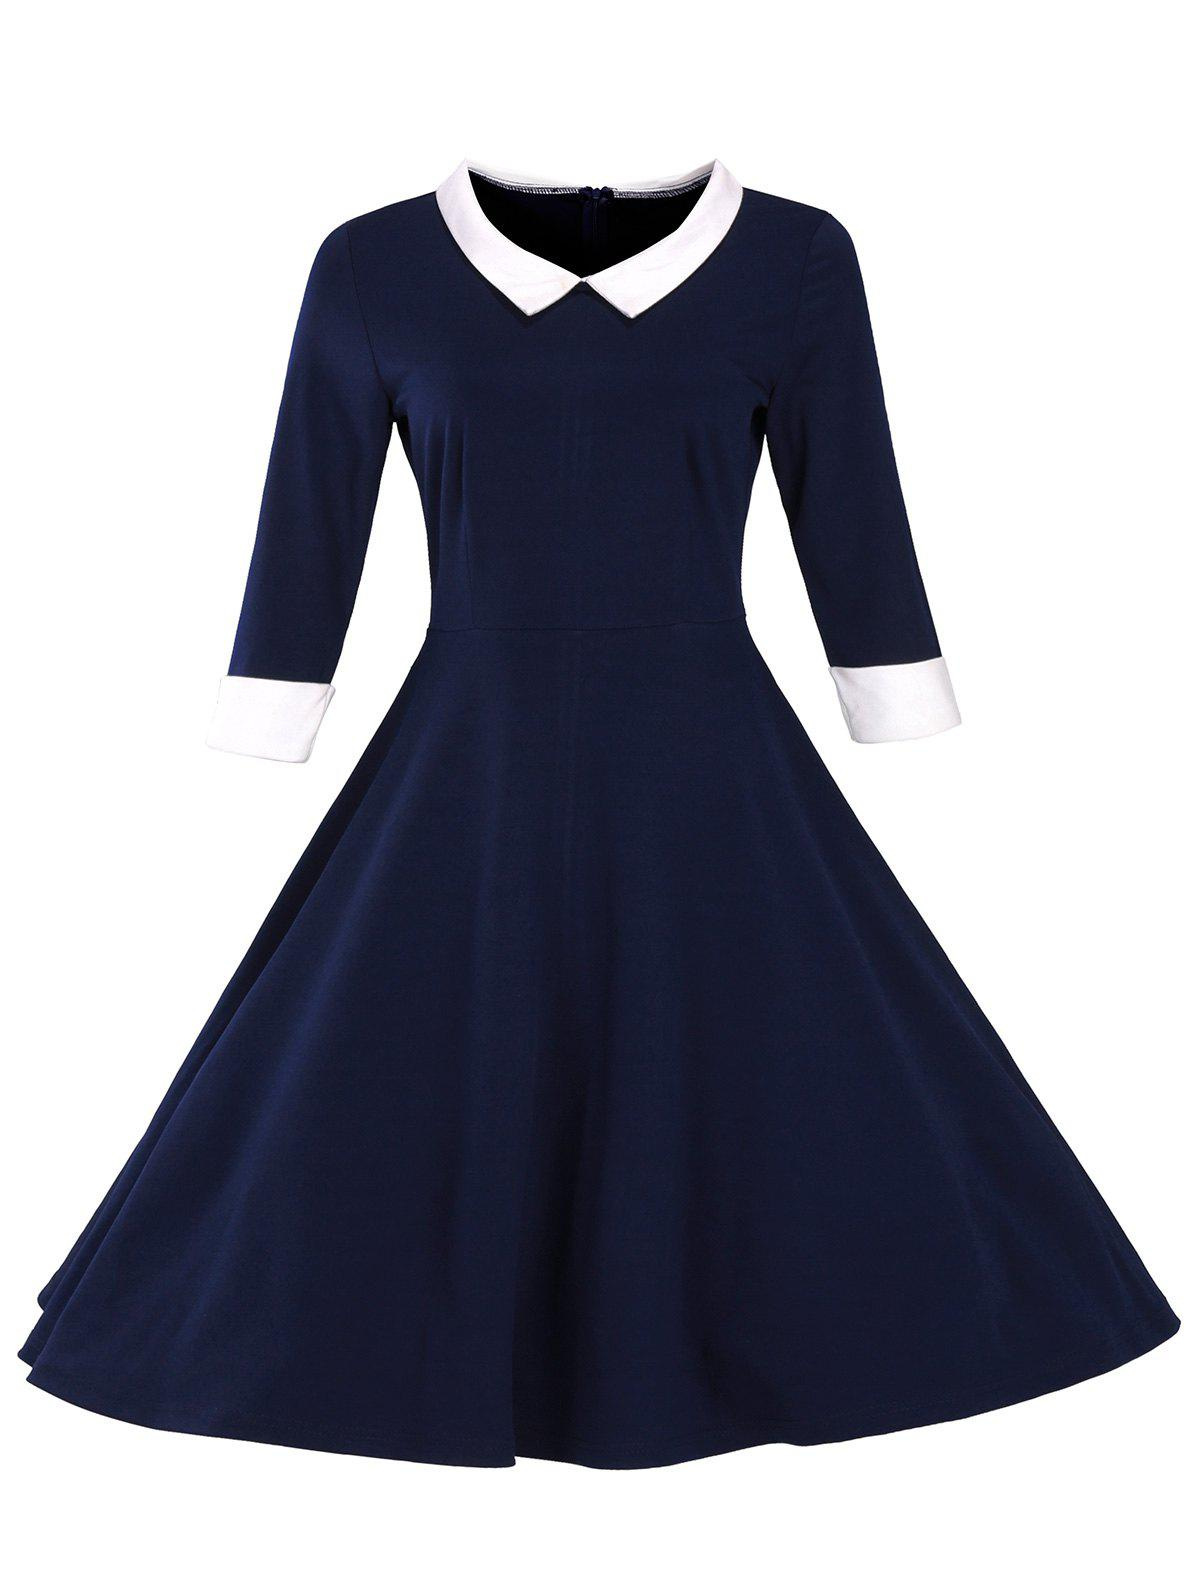 Retro Flat Collar Flare DressWOMEN<br><br>Size: XL; Color: PURPLISH BLUE; Style: Cute; Material: Cotton Blend,Polyester; Silhouette: Ball Gown; Dresses Length: Mid-Calf; Neckline: Flat Collar; Sleeve Length: 3/4 Length Sleeves; Embellishment: Vintage; Pattern Type: Patchwork; With Belt: No; Season: Fall,Spring,Winter; Weight: 0.470kg; Package Contents: 1 x Dress;